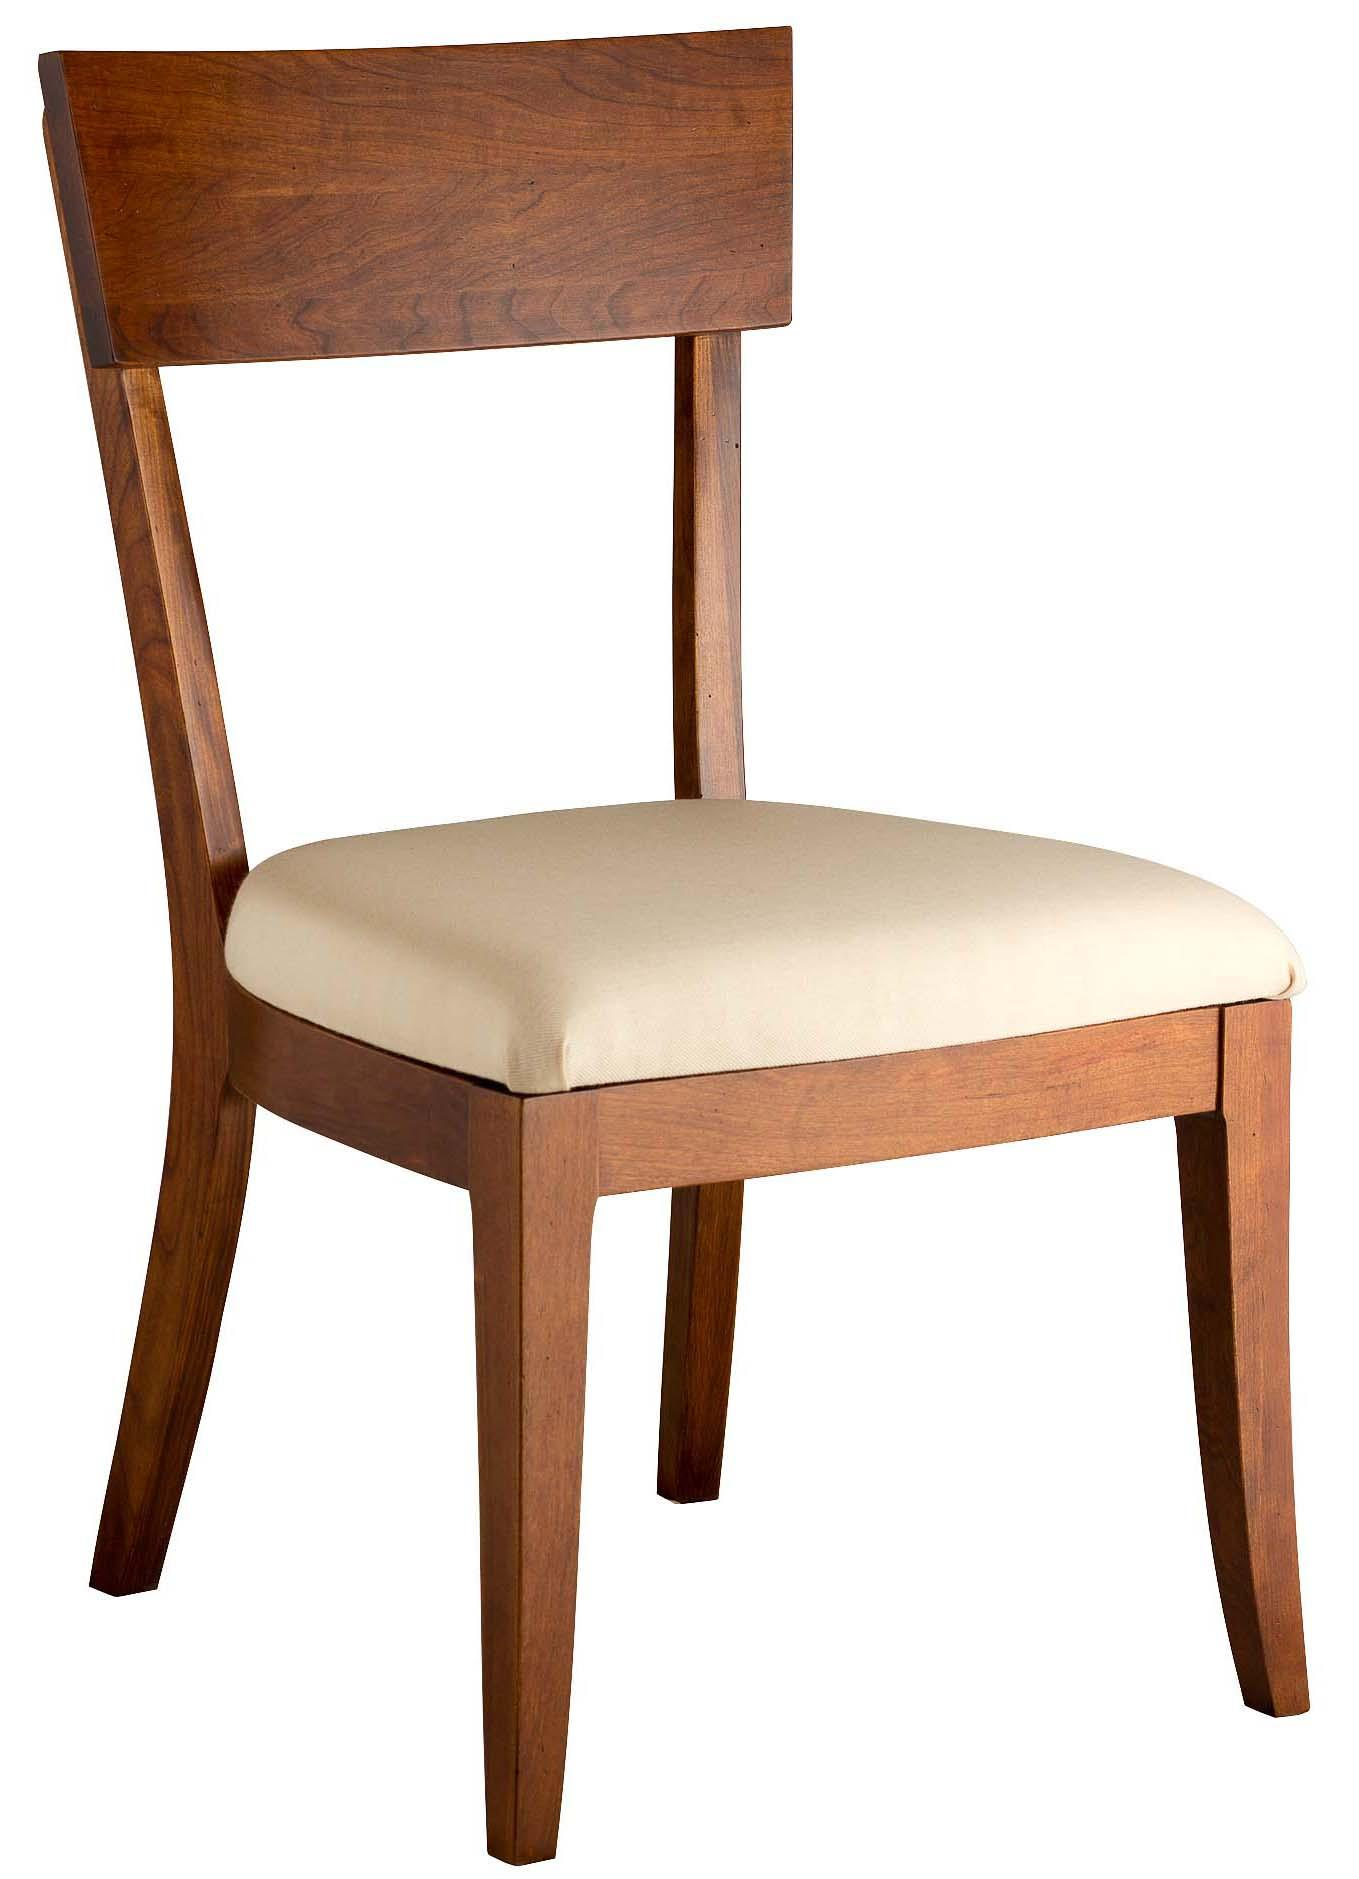 Greenbrier Dining Bella Side Chair with Upholstered Seat - Item Number: 81309